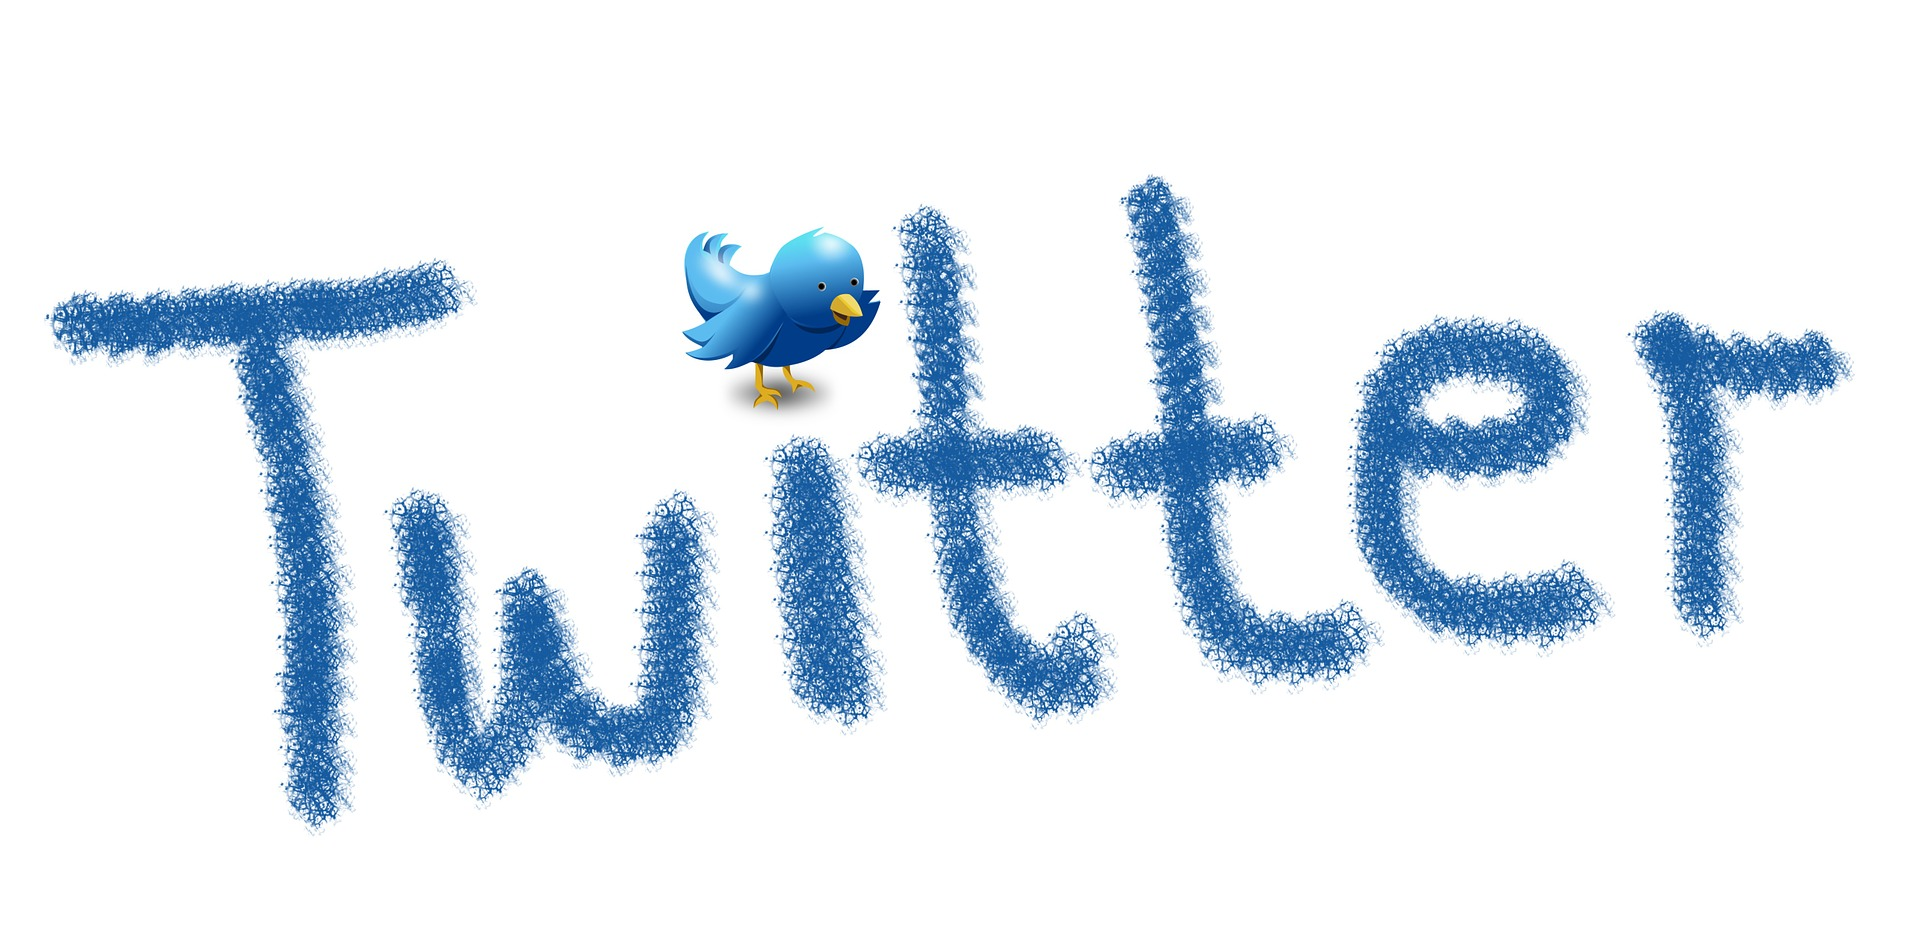 Twitter Hacks for Your Posts